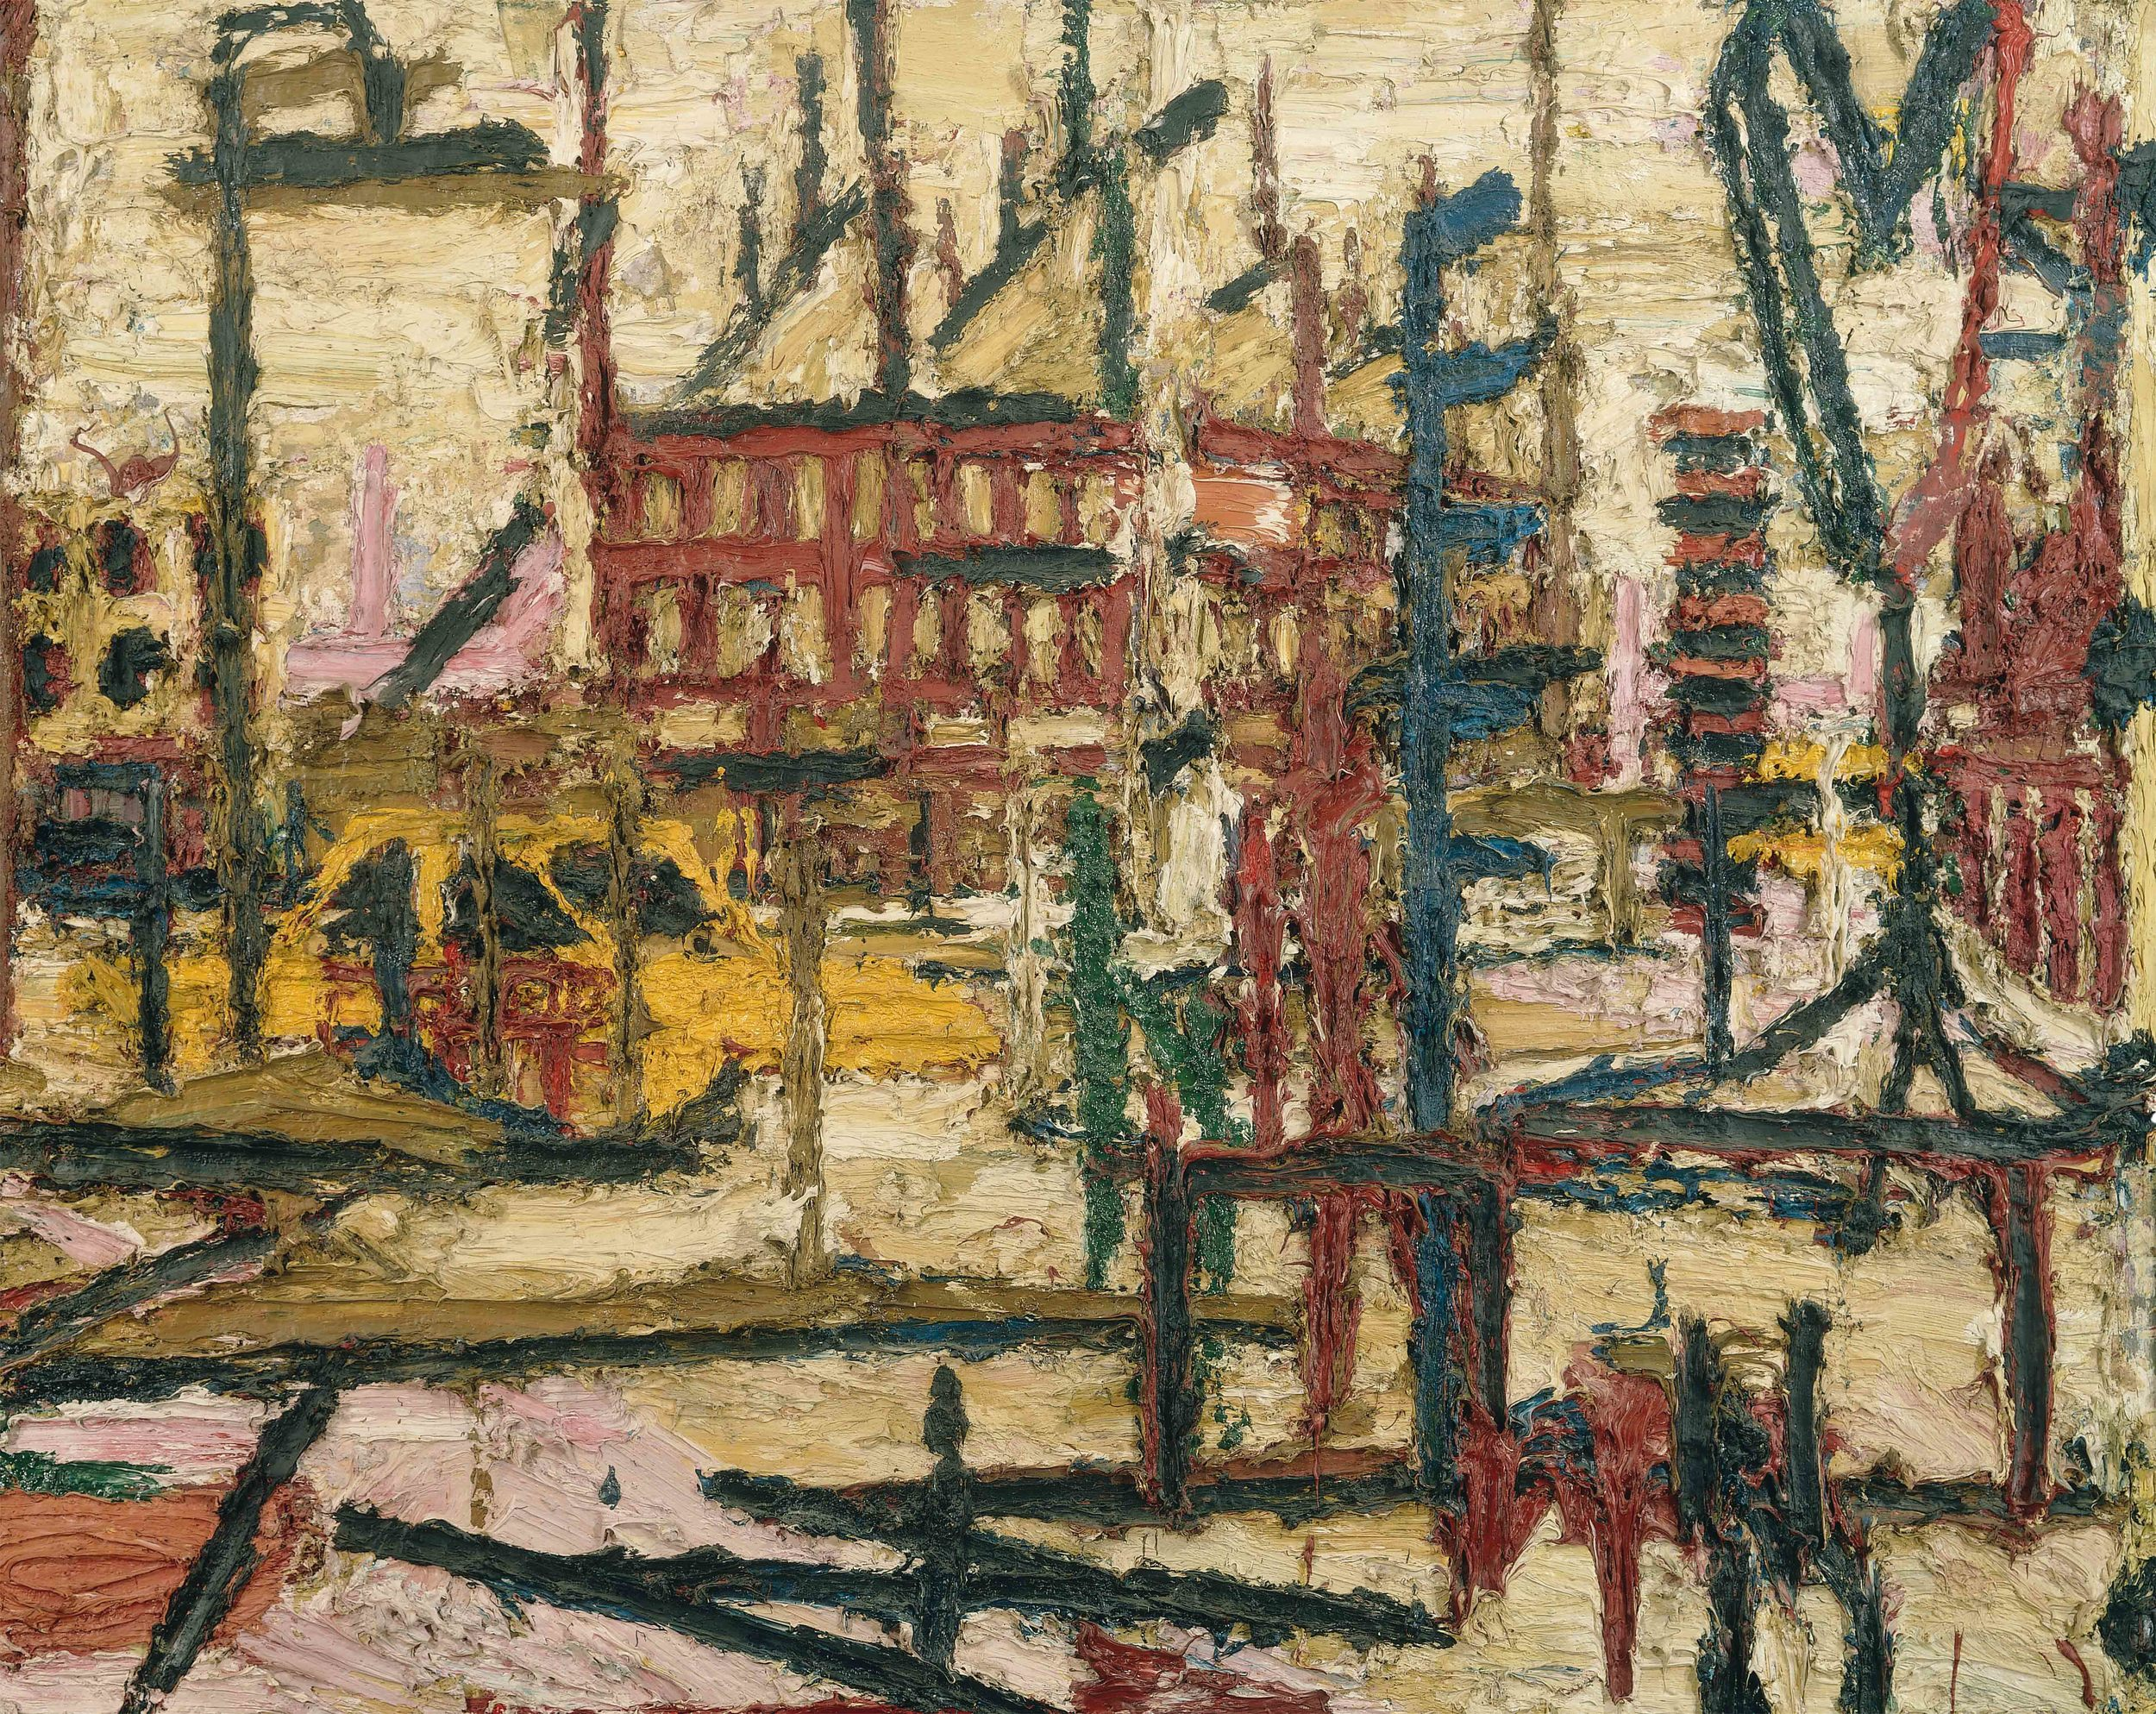 Frank Auerbach (b 1931)  Mornington Crescent  1965, Painting, Oil paint on board, 1016 x 1270 mm  Private collection, © Frank Auerbach, courtesy Marlborough Fine Art